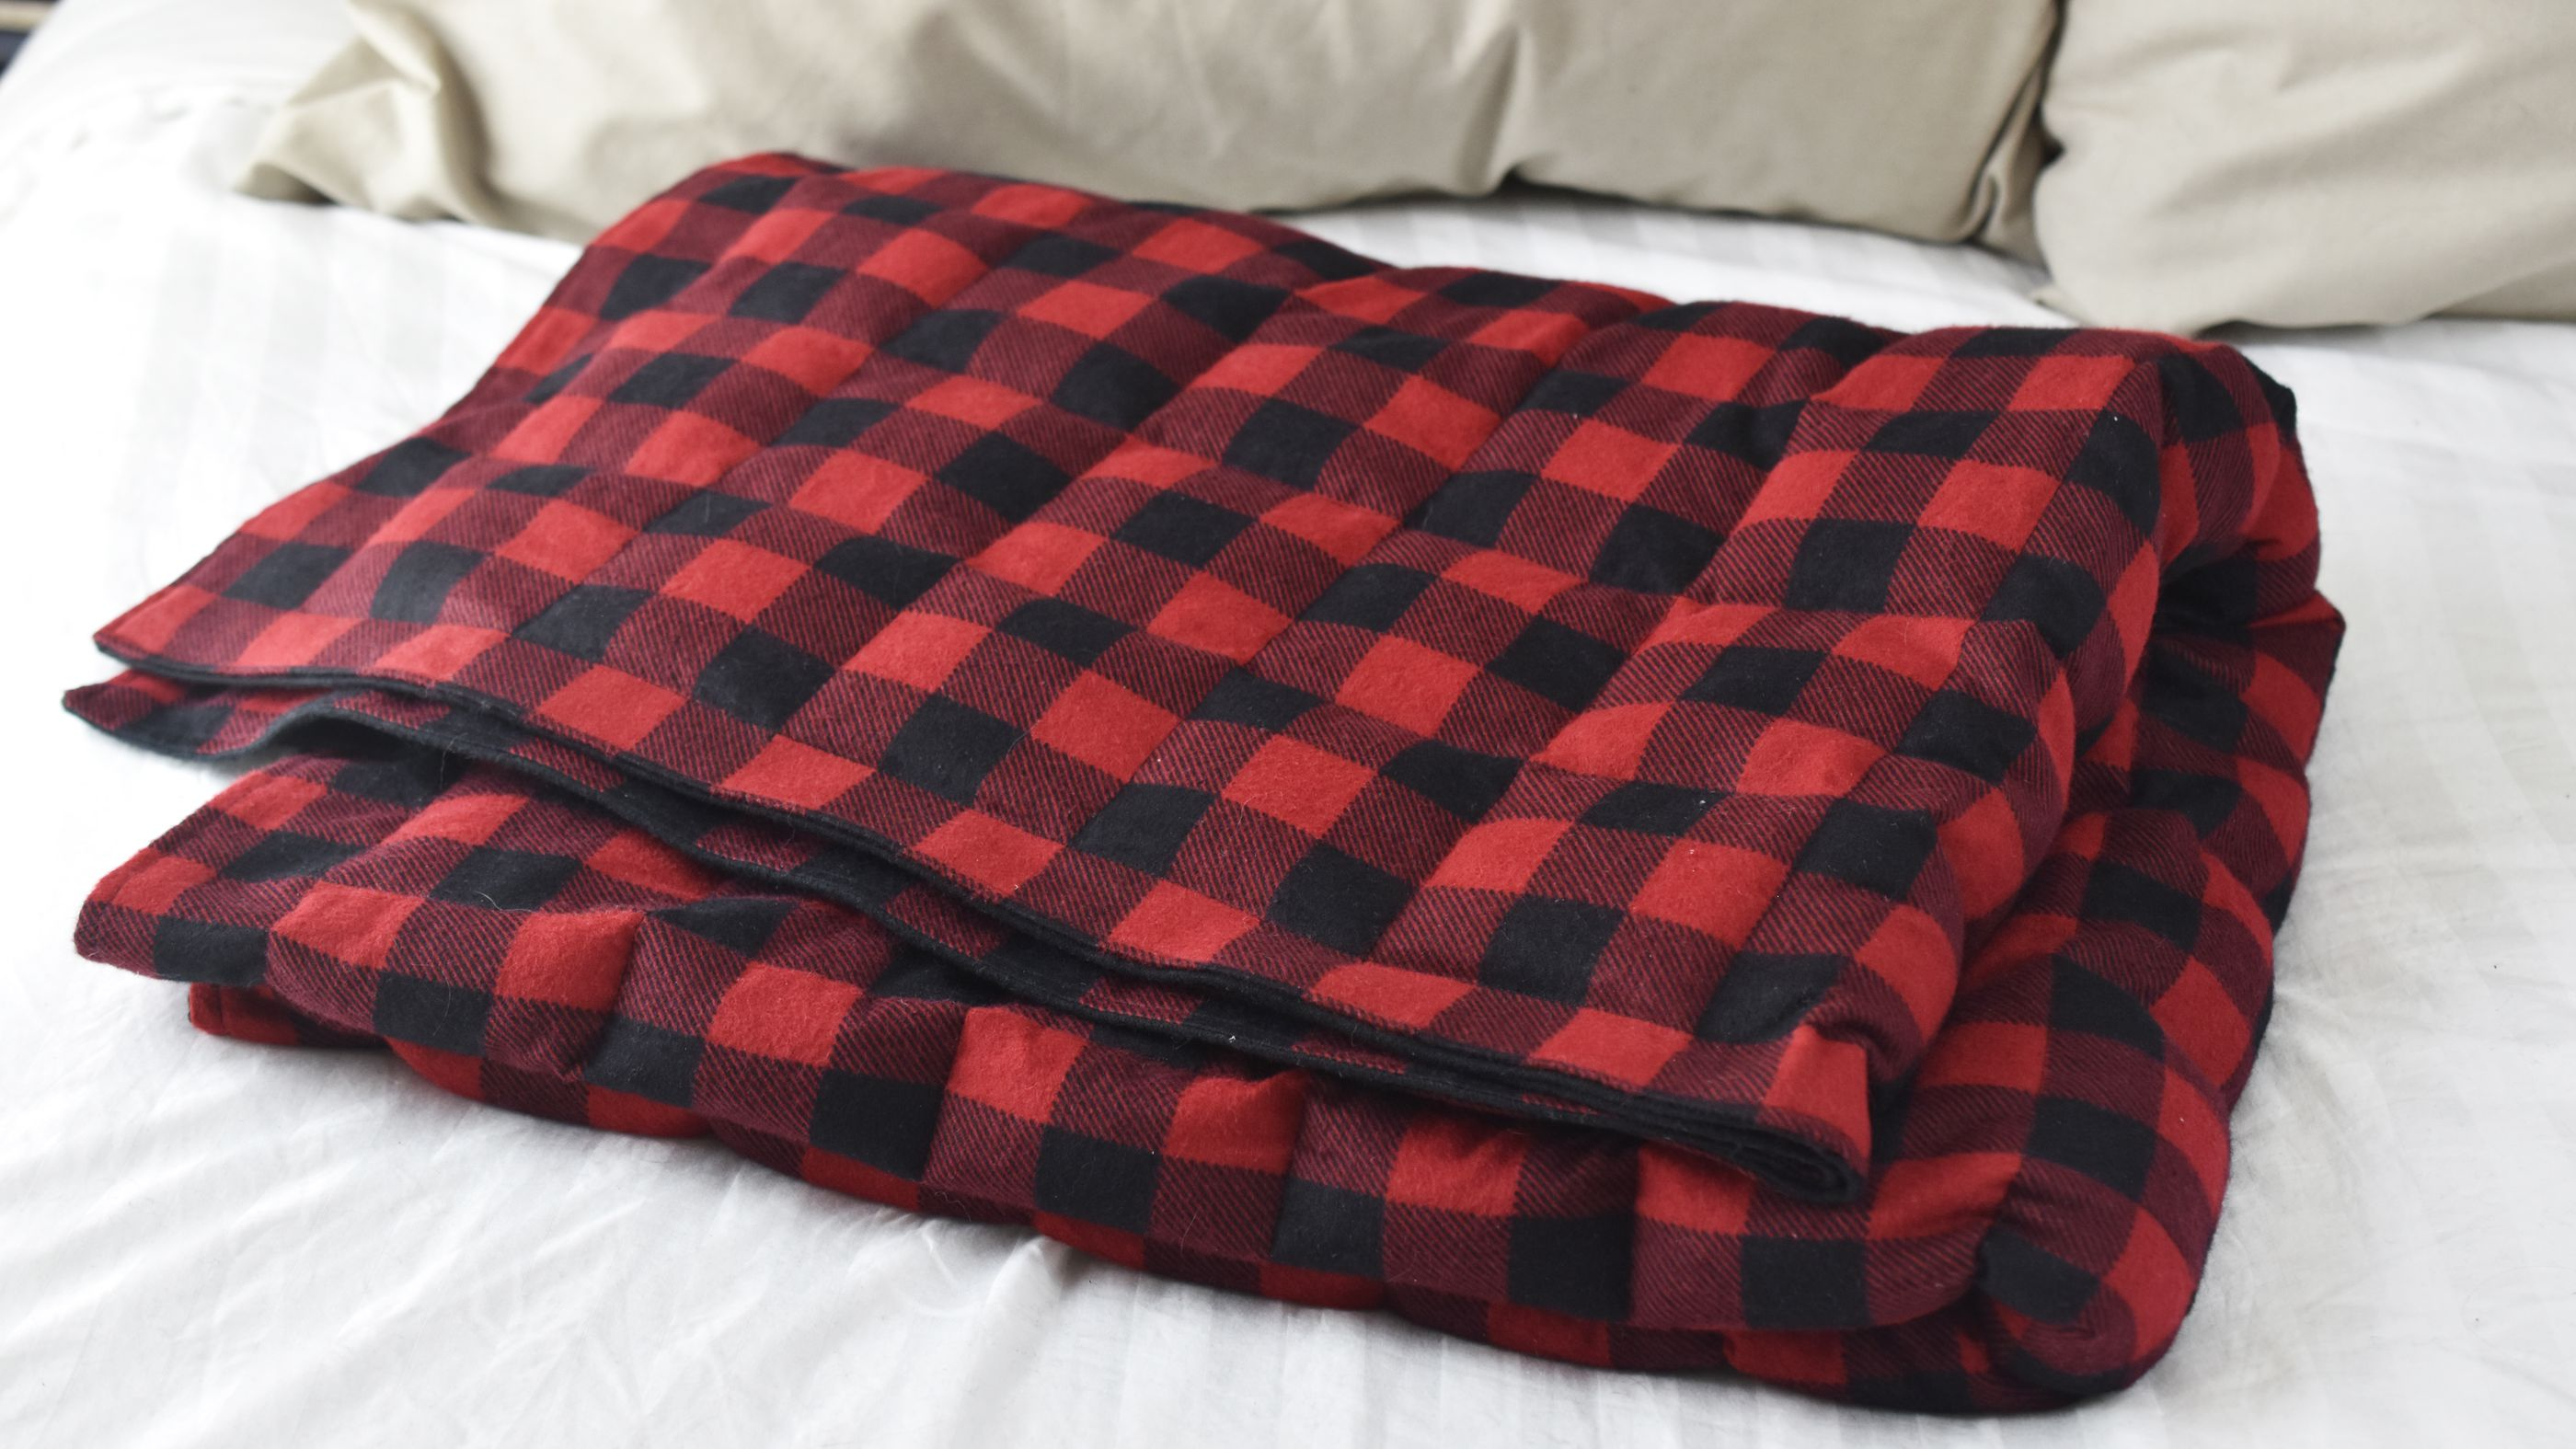 How To Make A Weighted Blanket